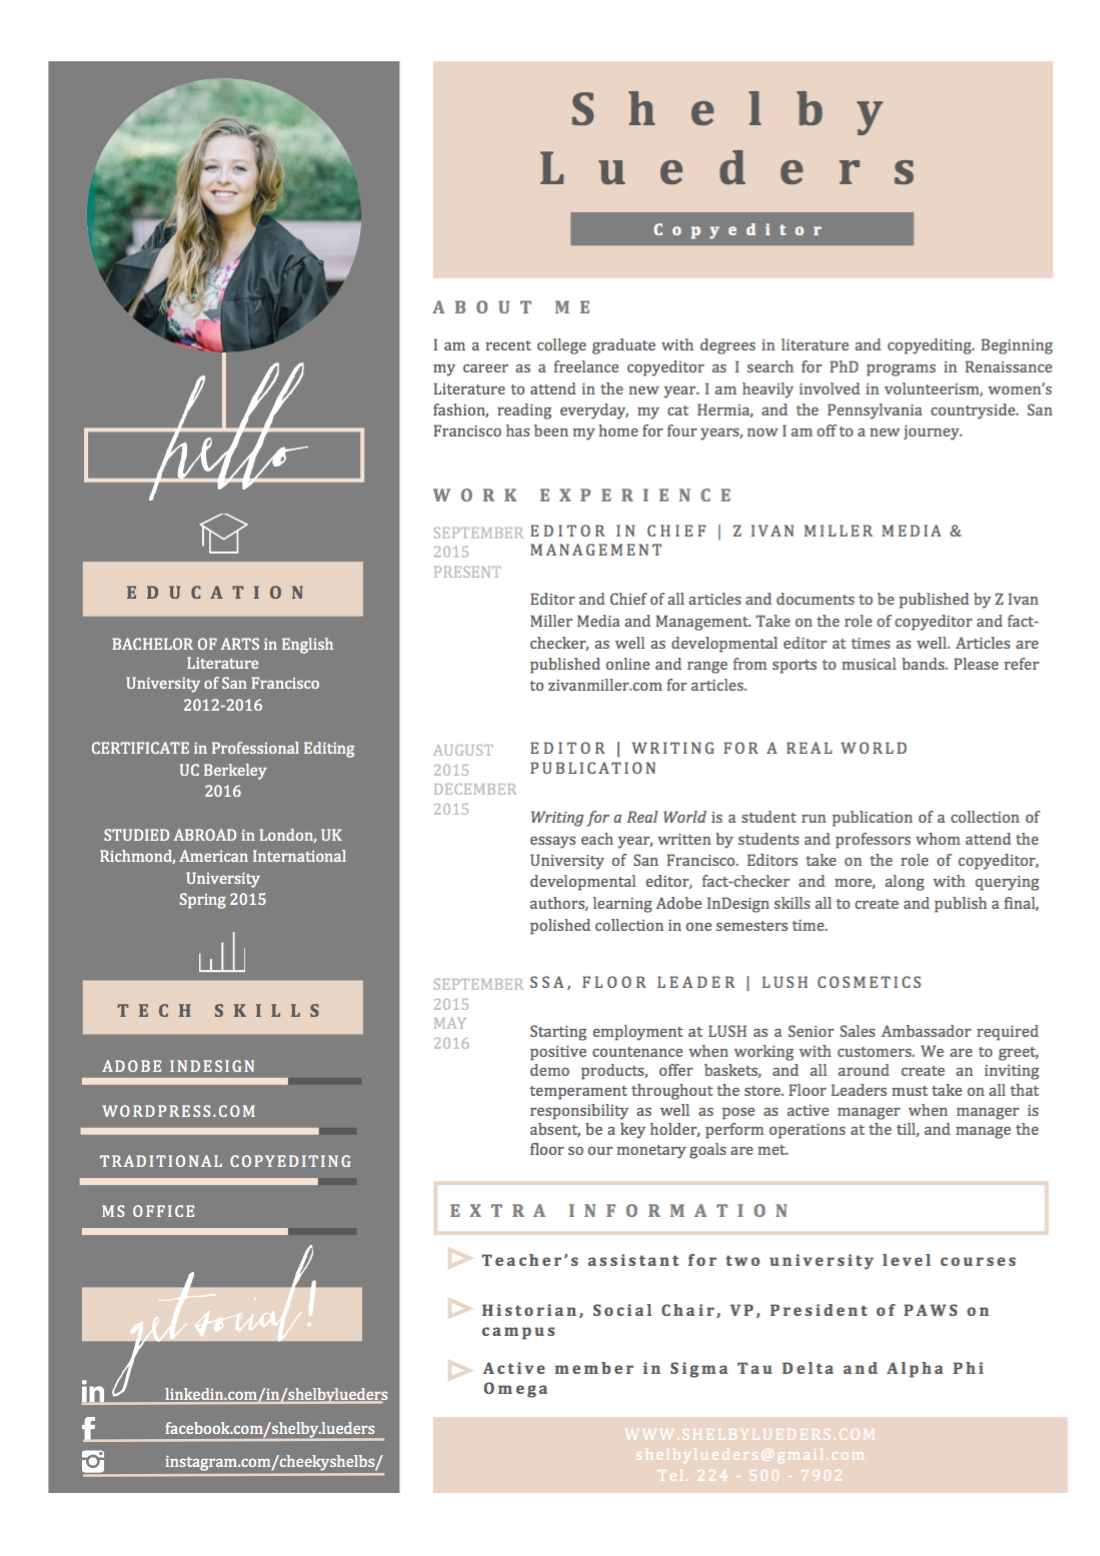 resume shelby lueders